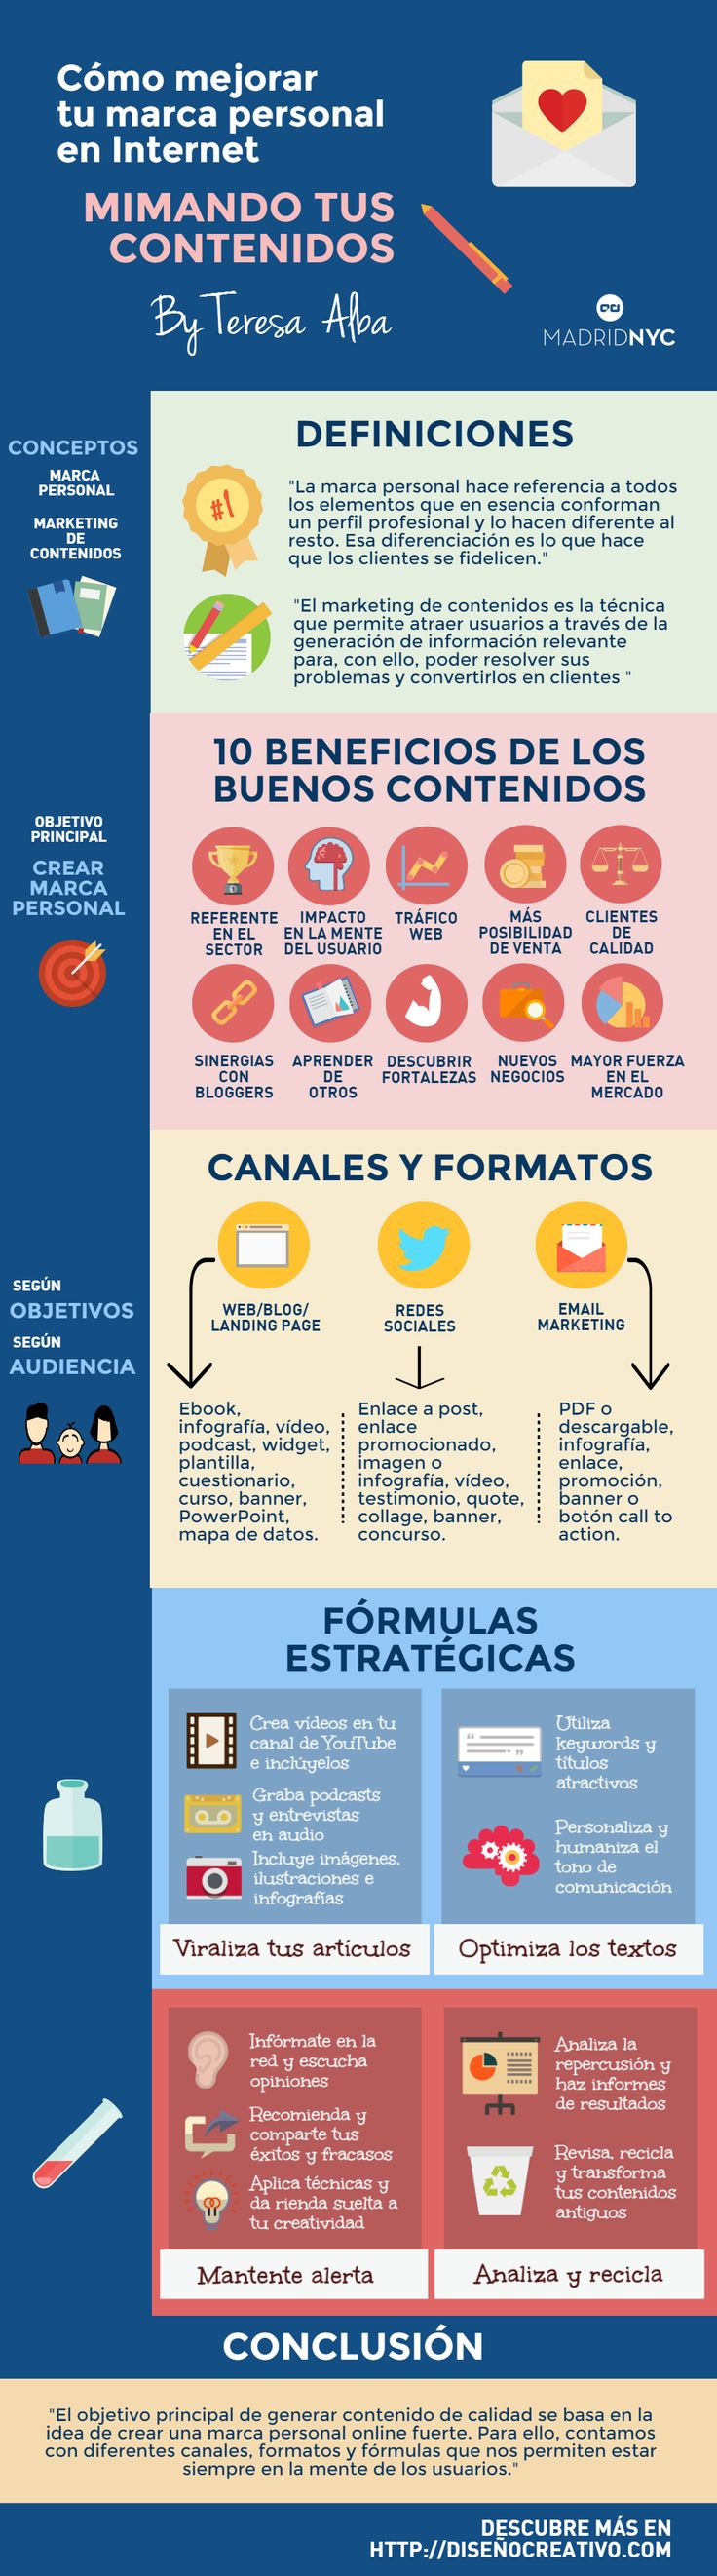 crear-marca-personal-online-con-marketing-de-contenidos